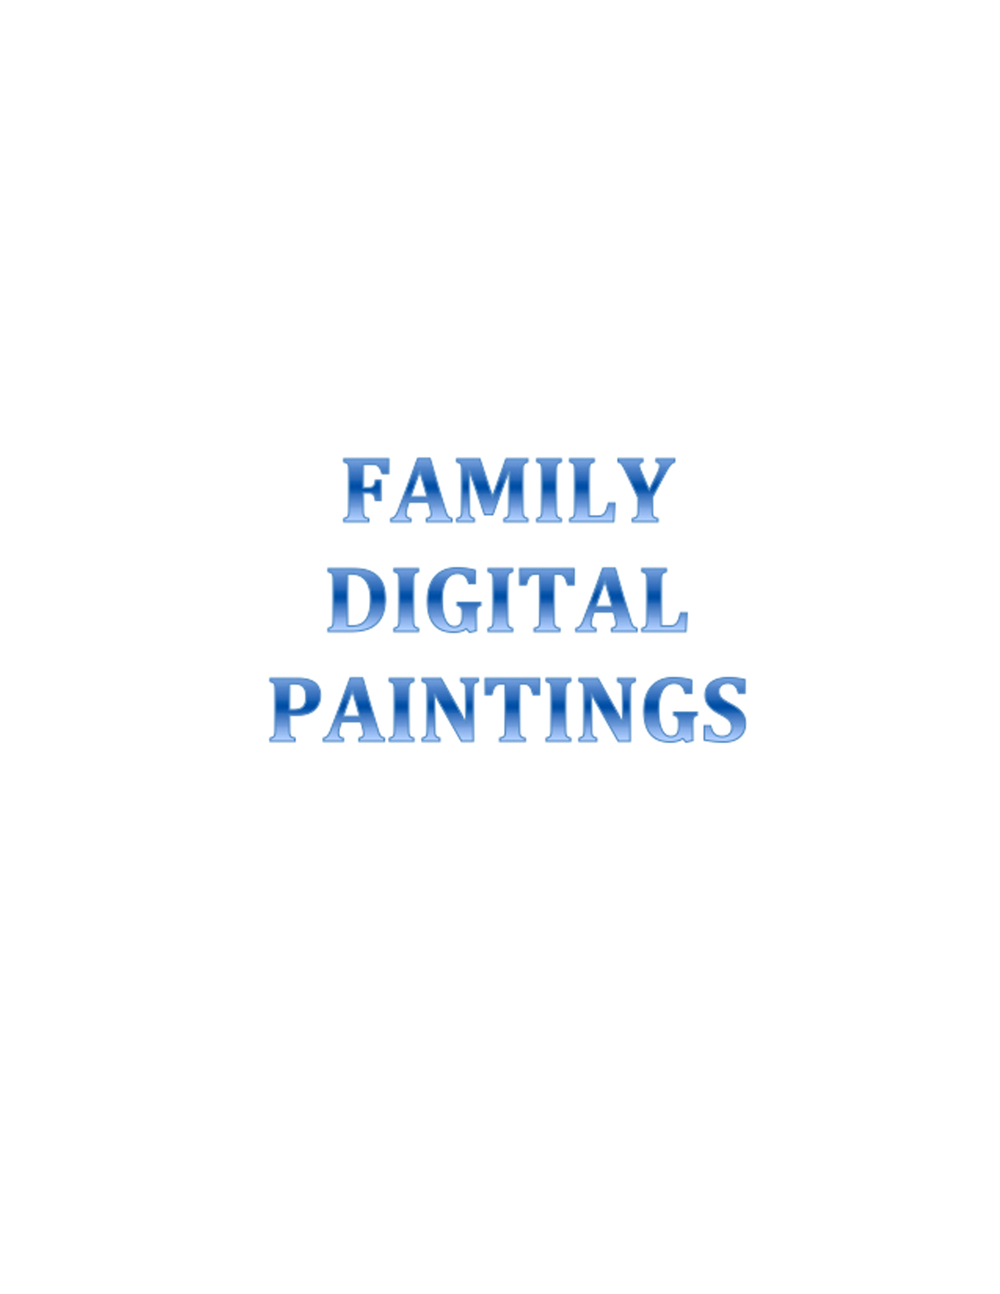 FAMILY DIGITAL PAINTING GOOD.jpg